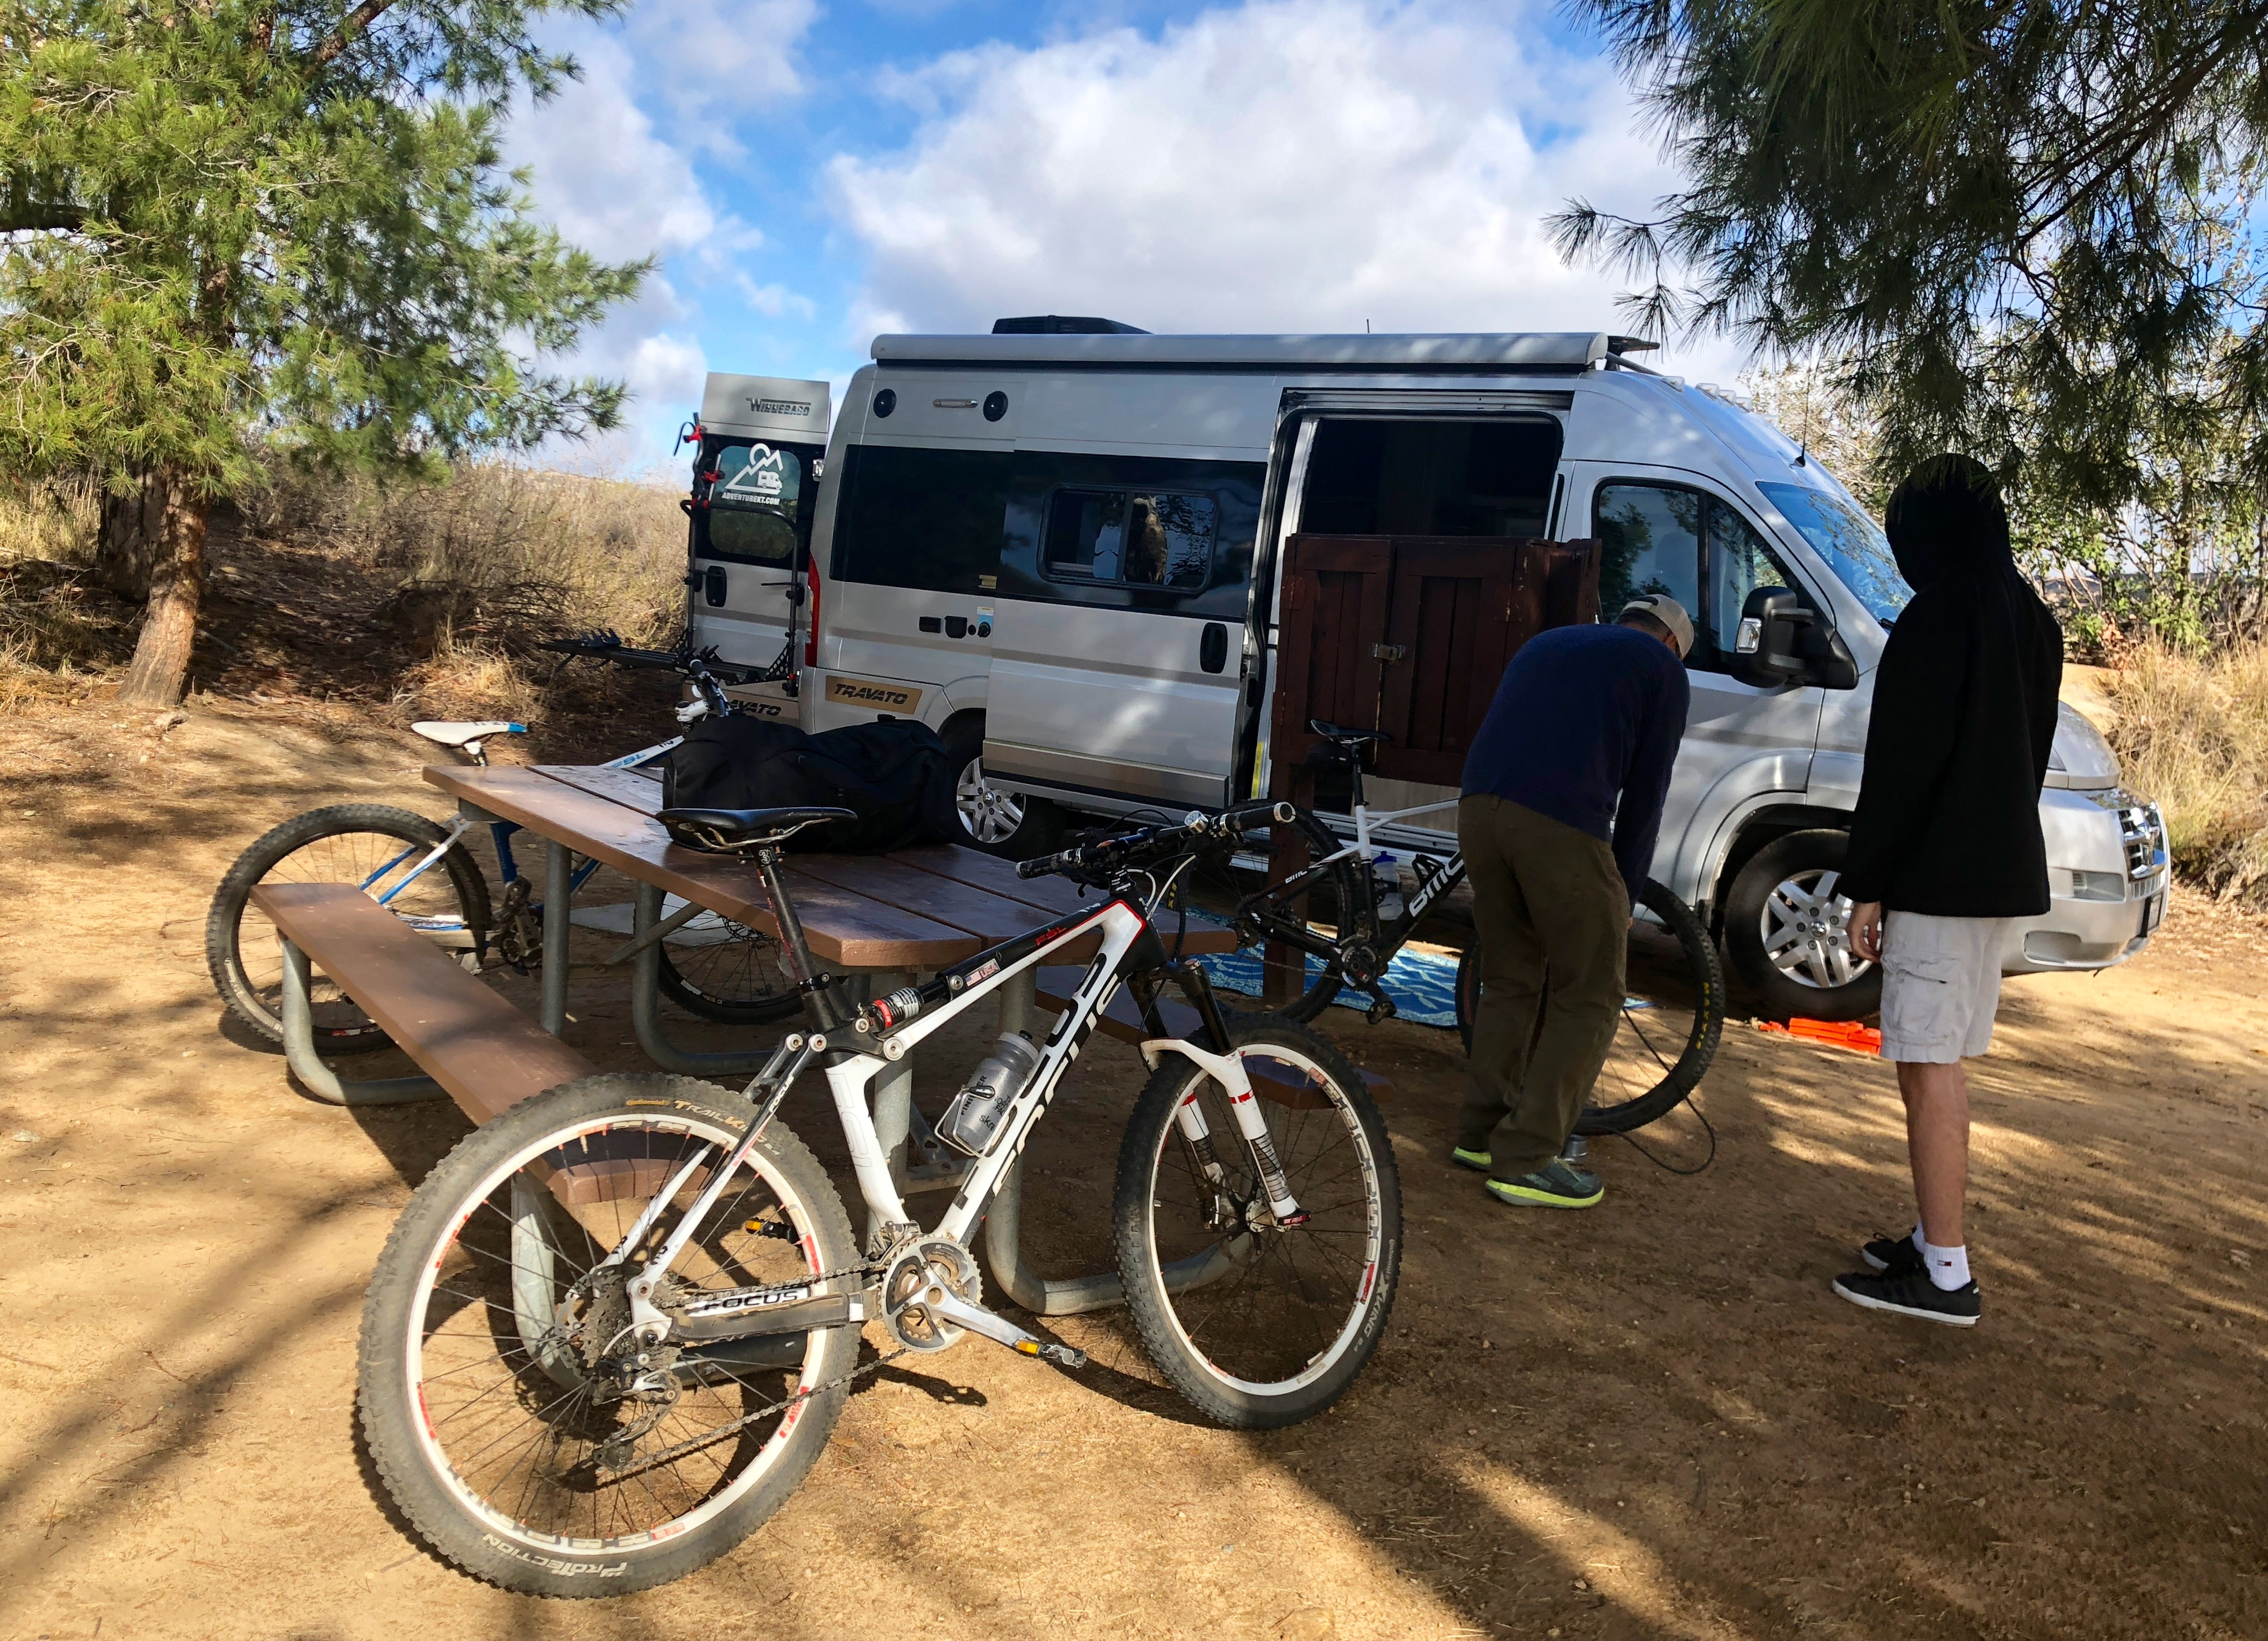 bikes and rv camper van rental from San Diego